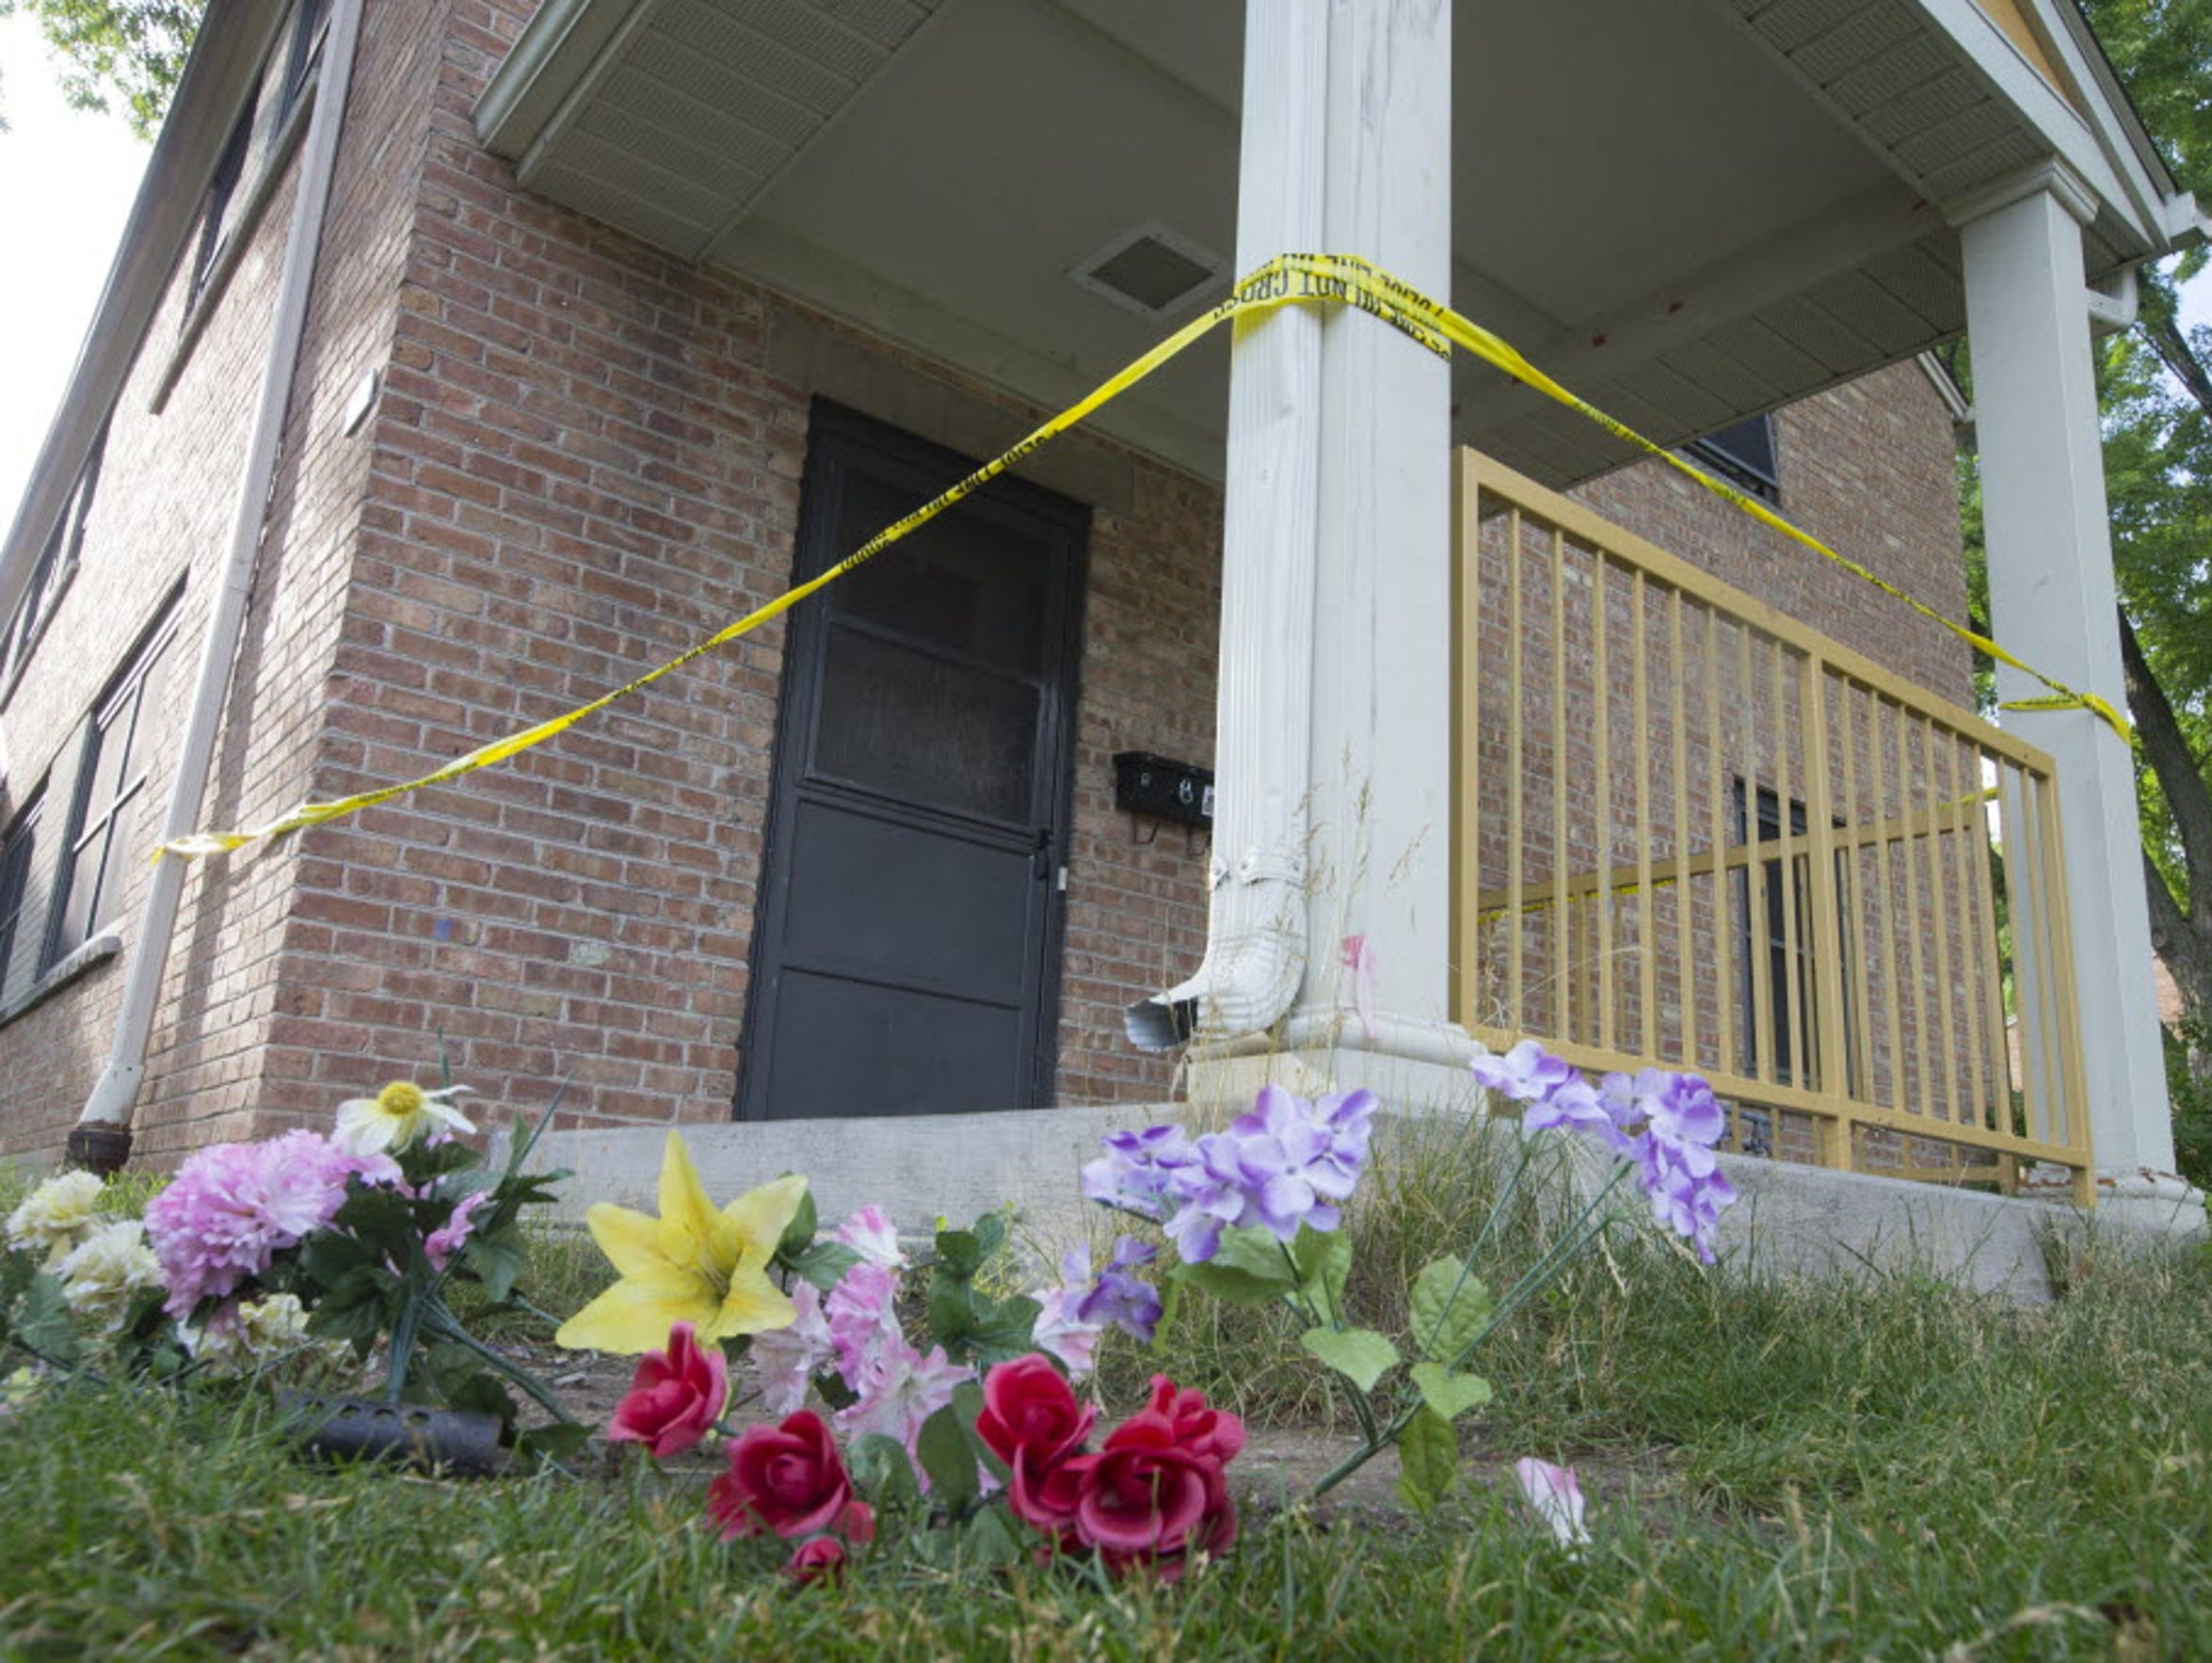 Police tape marks the scene where 13-year-old Giovonnie